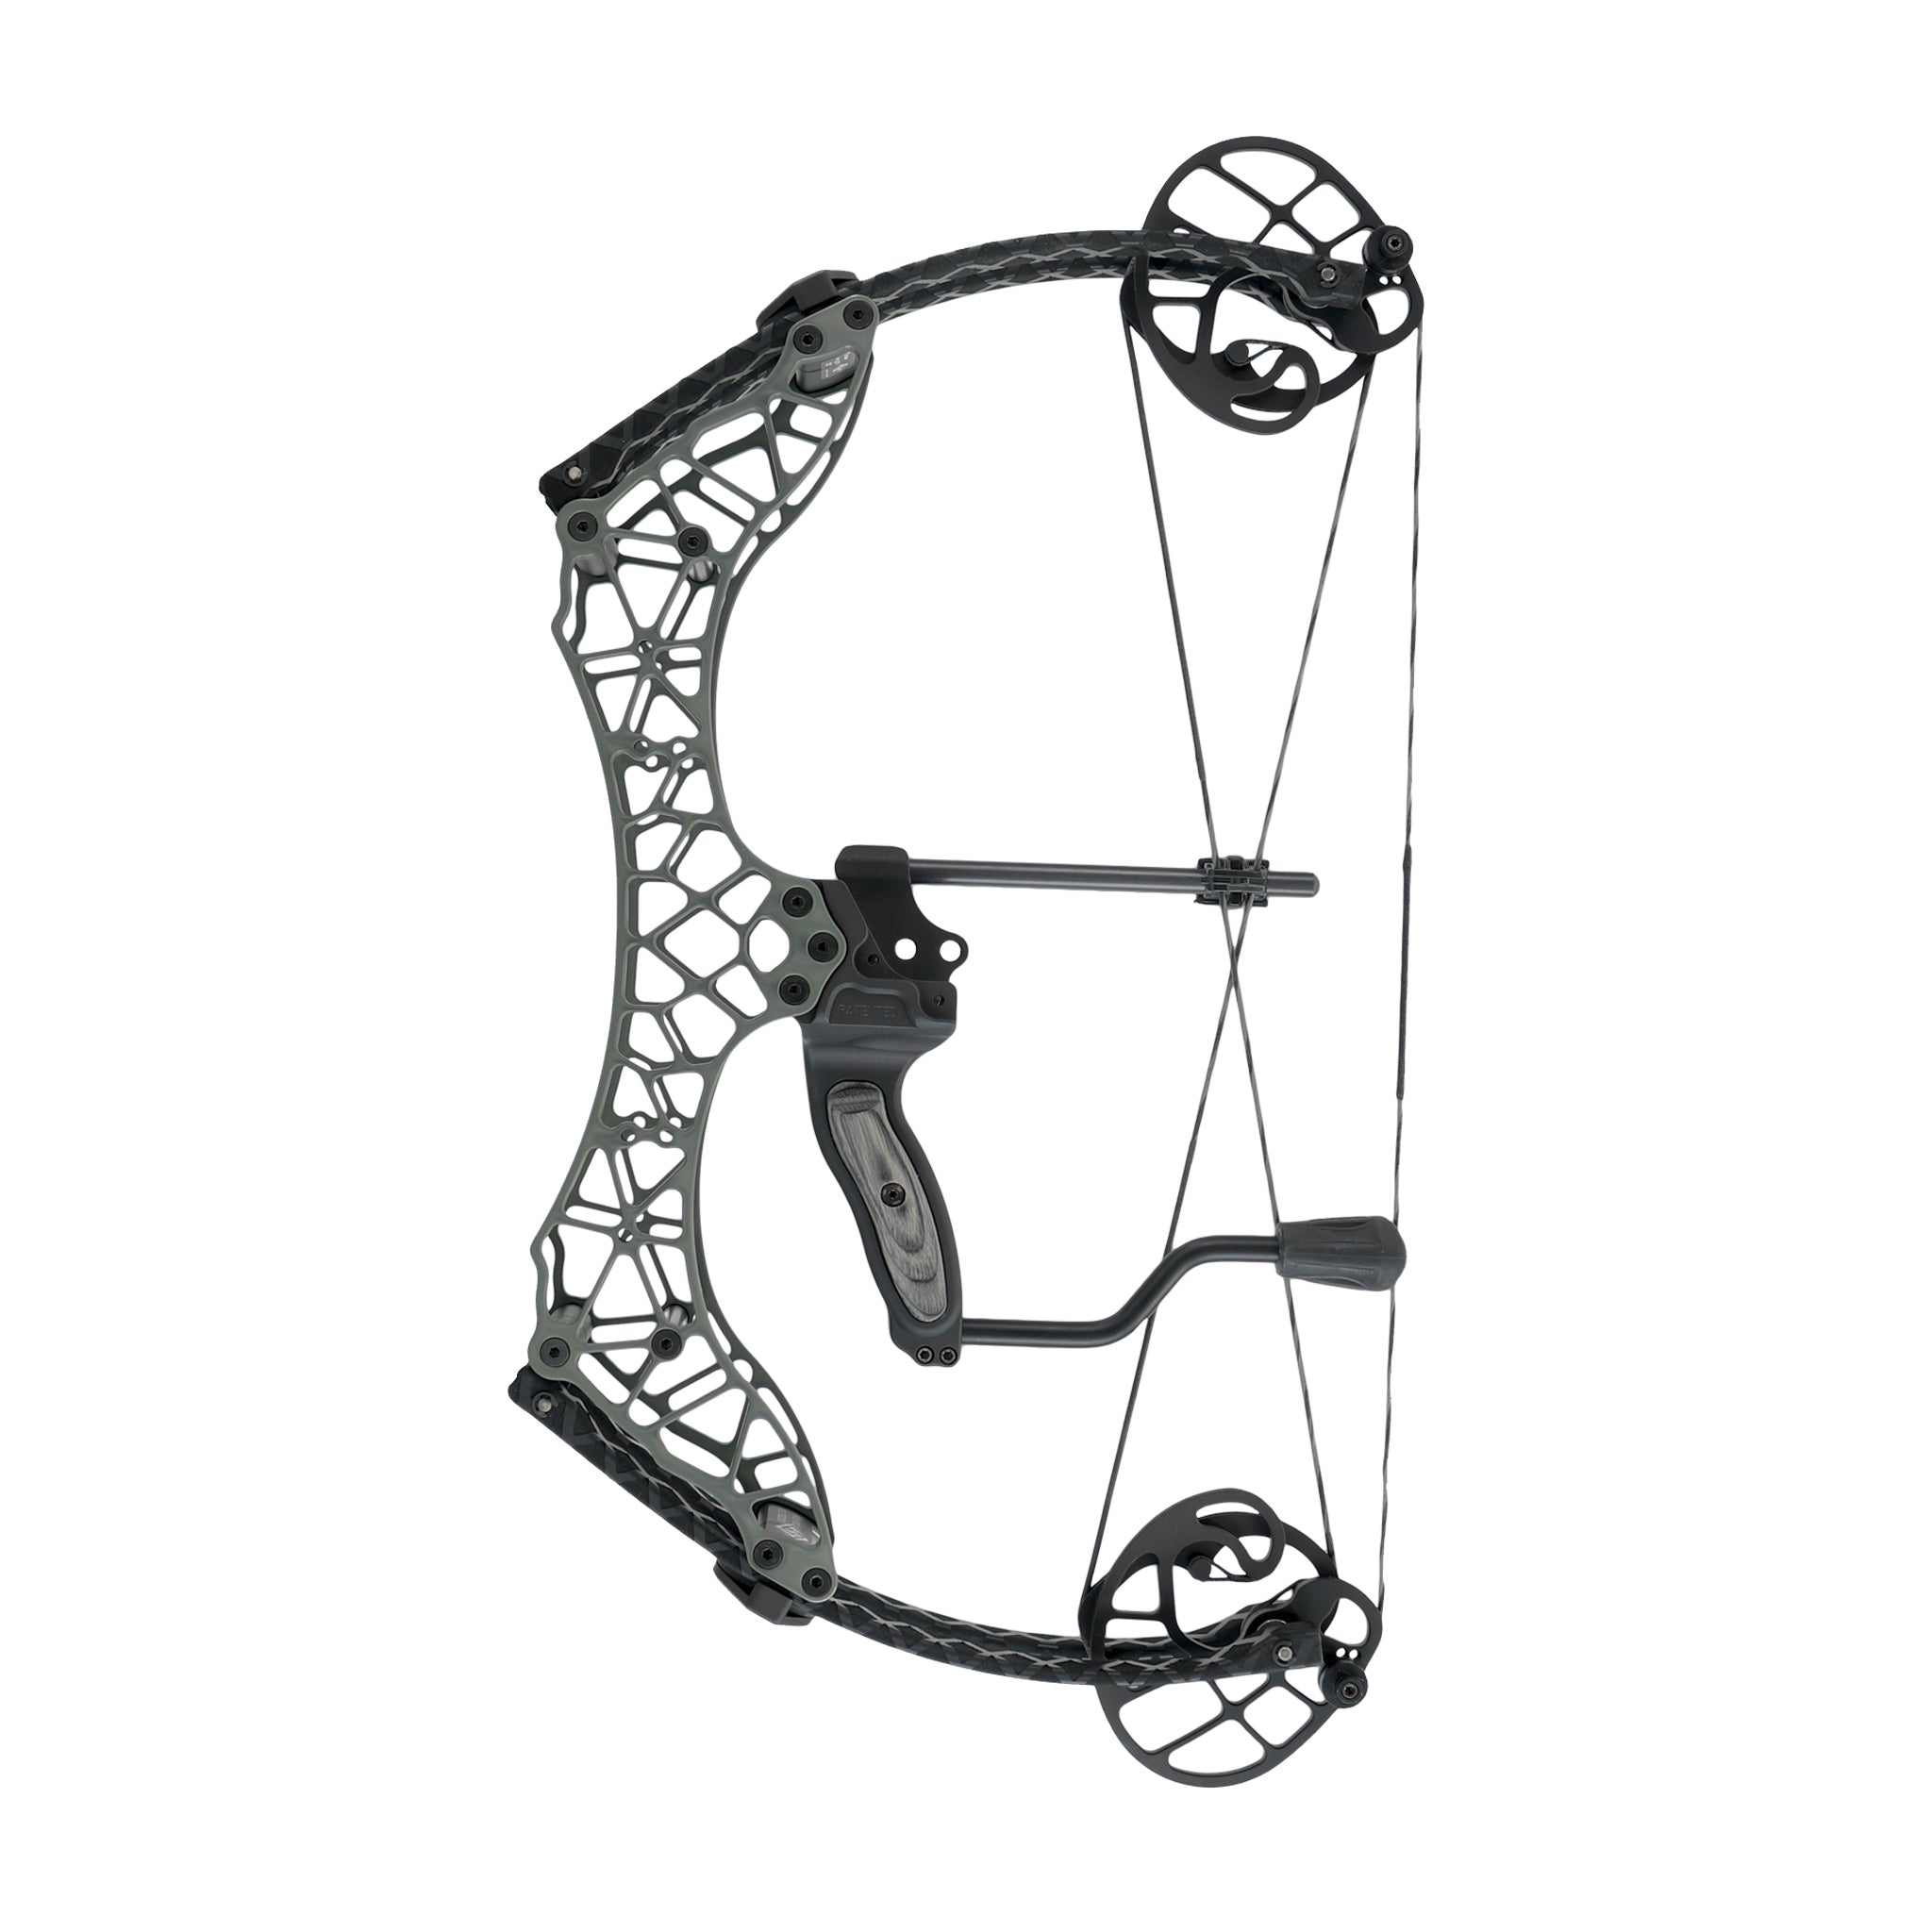 T18 Hunter Series Compound Bow